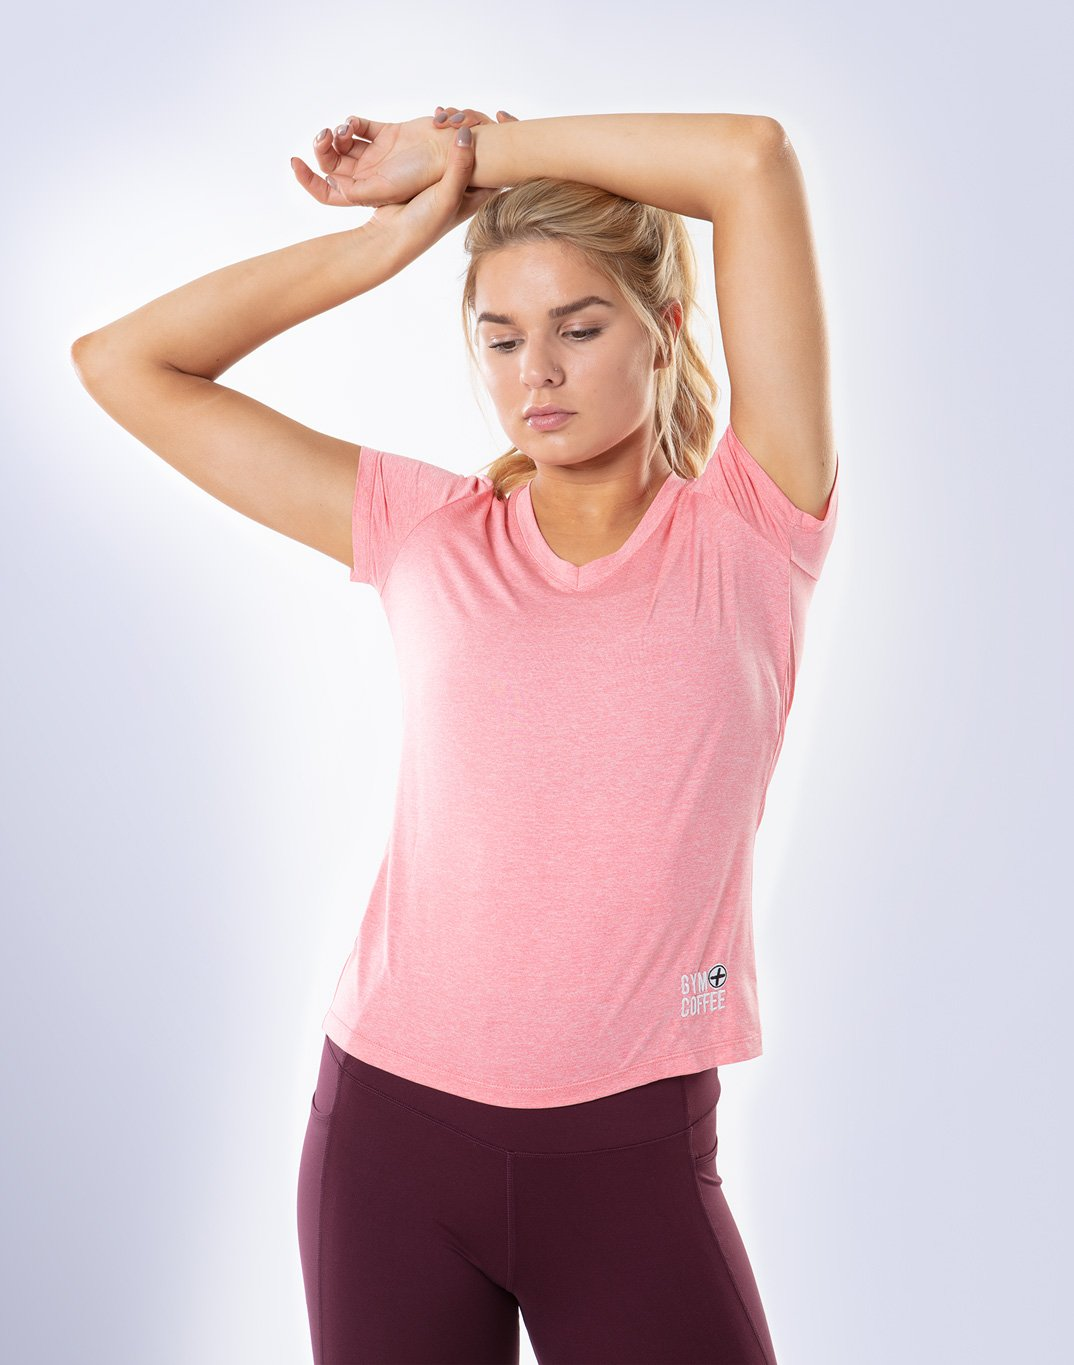 Gym Plus Coffee T-Shirt Raglan V-Tech Tee in Peach Designed in Ireland